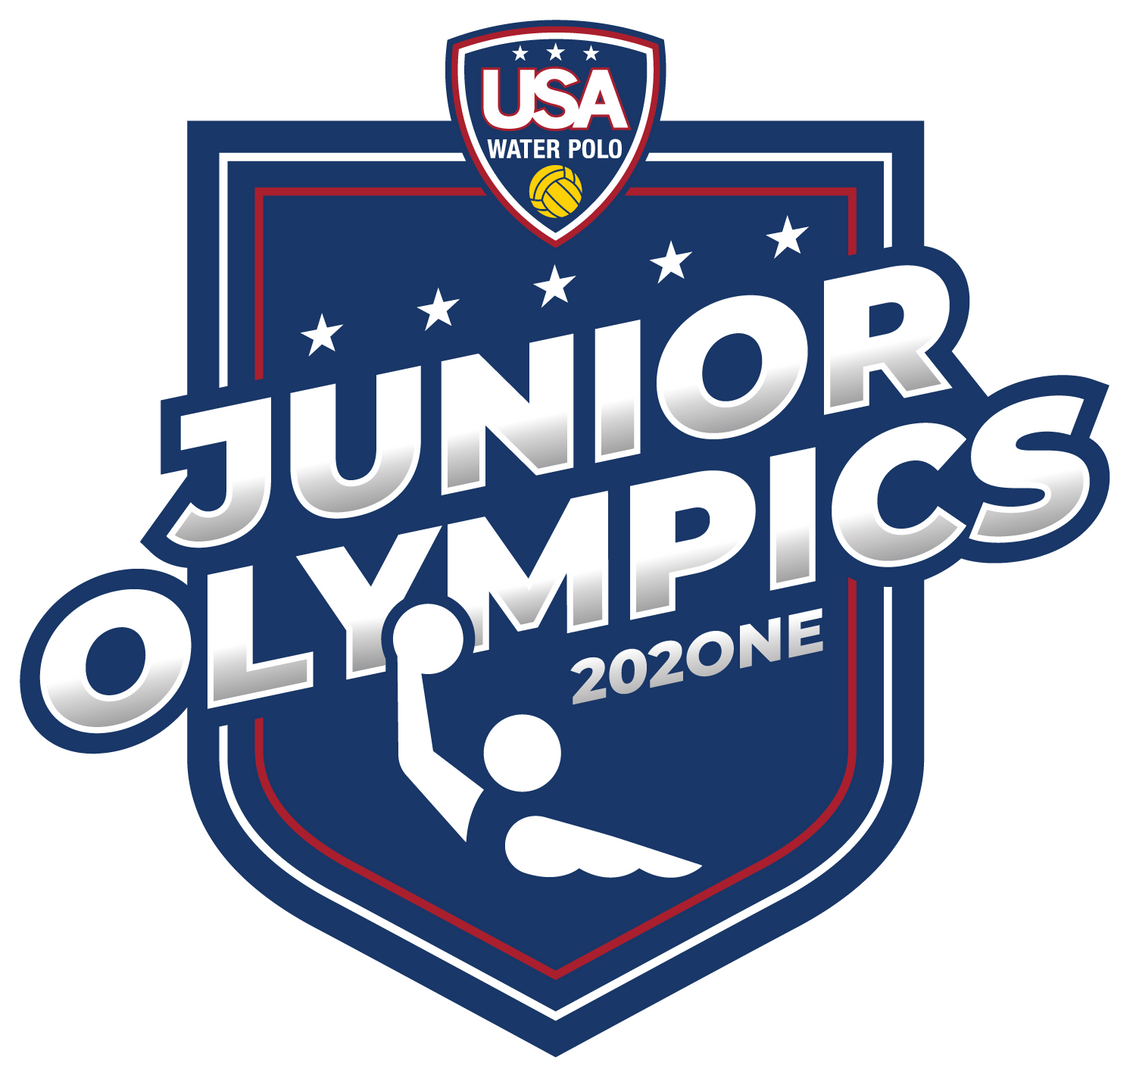 Junior Olympics 202ONE - Full Color.png